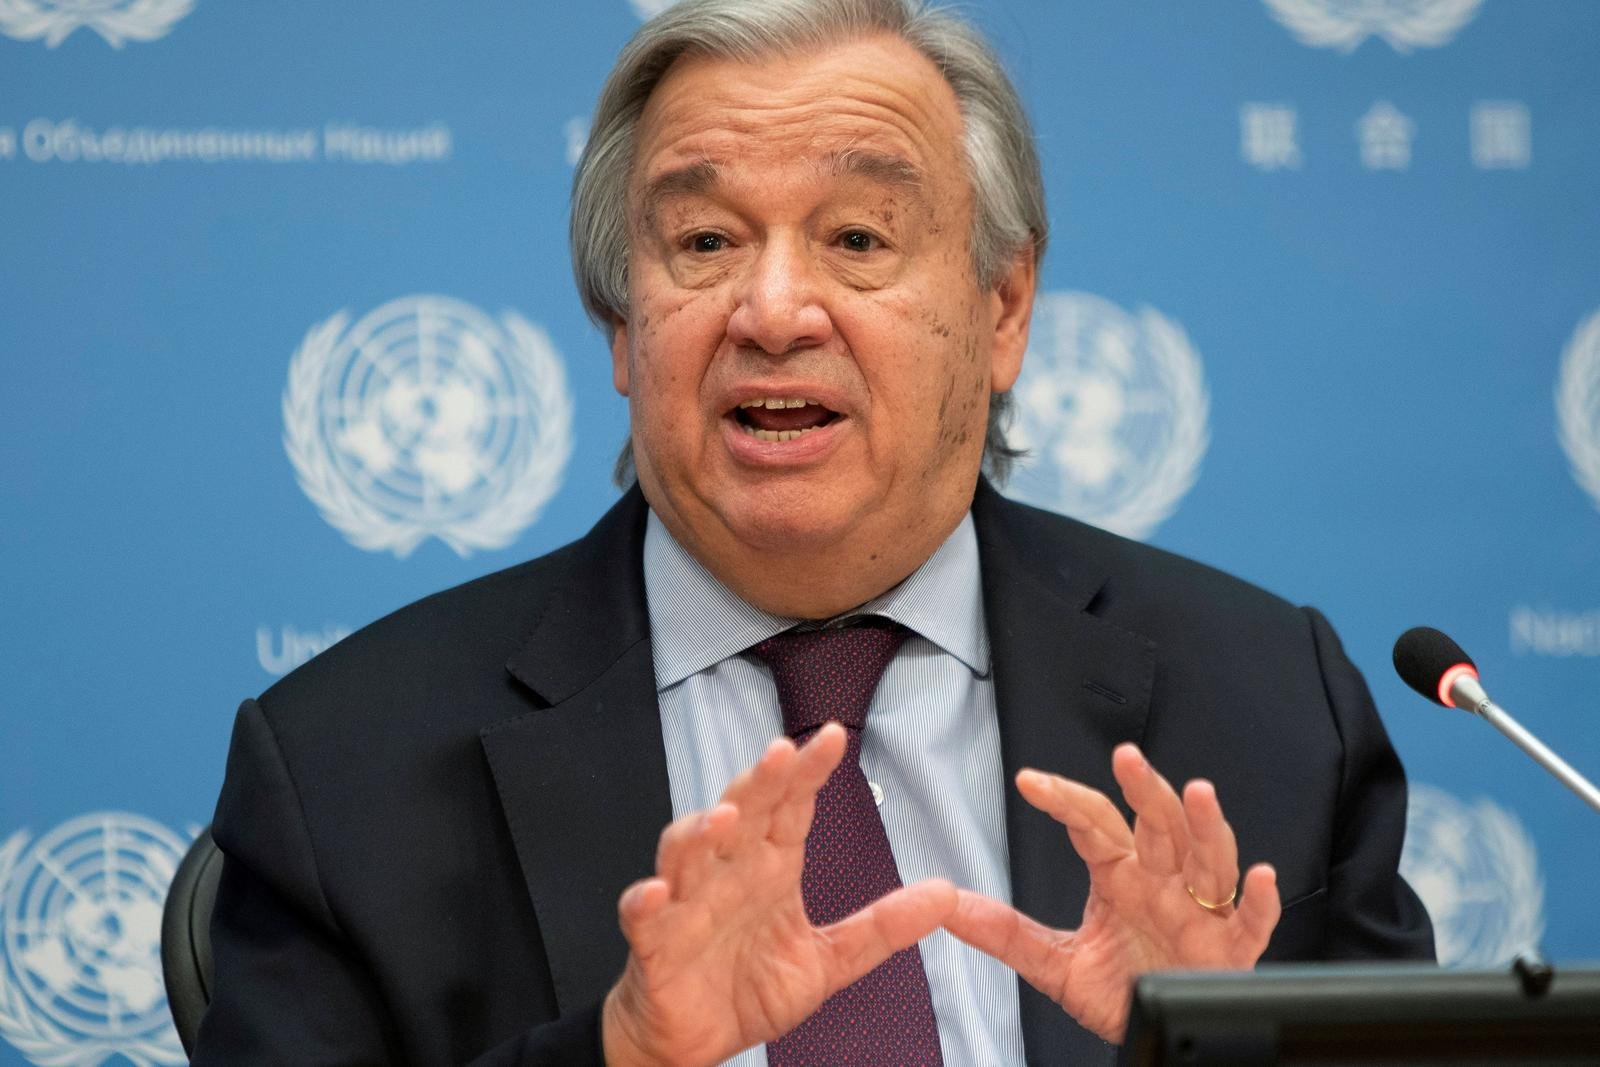 U.N. chief urges leaders of every country to declare 'climate emergency'